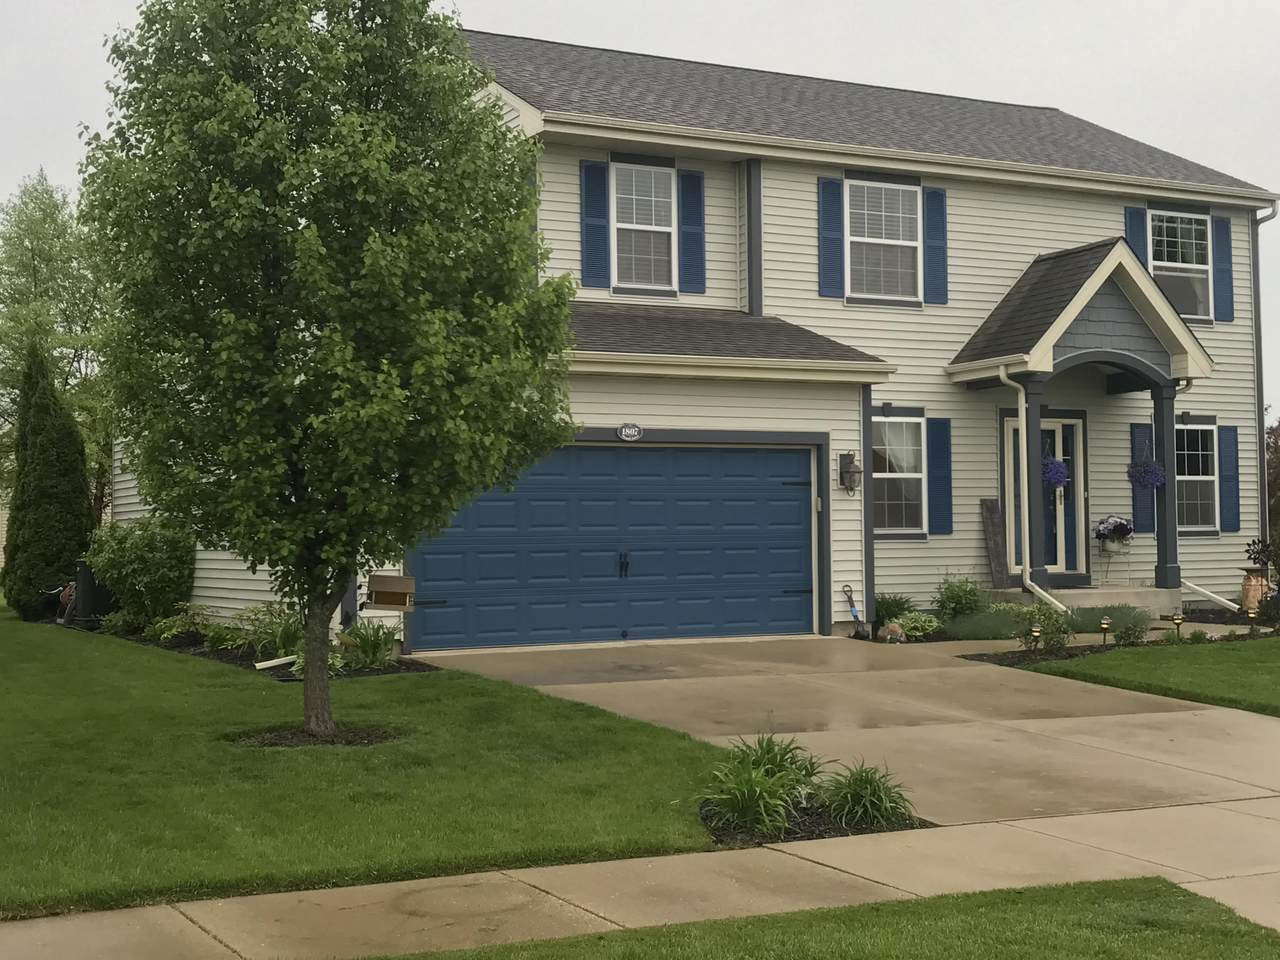 1807 Pintail Dr - Photo 1